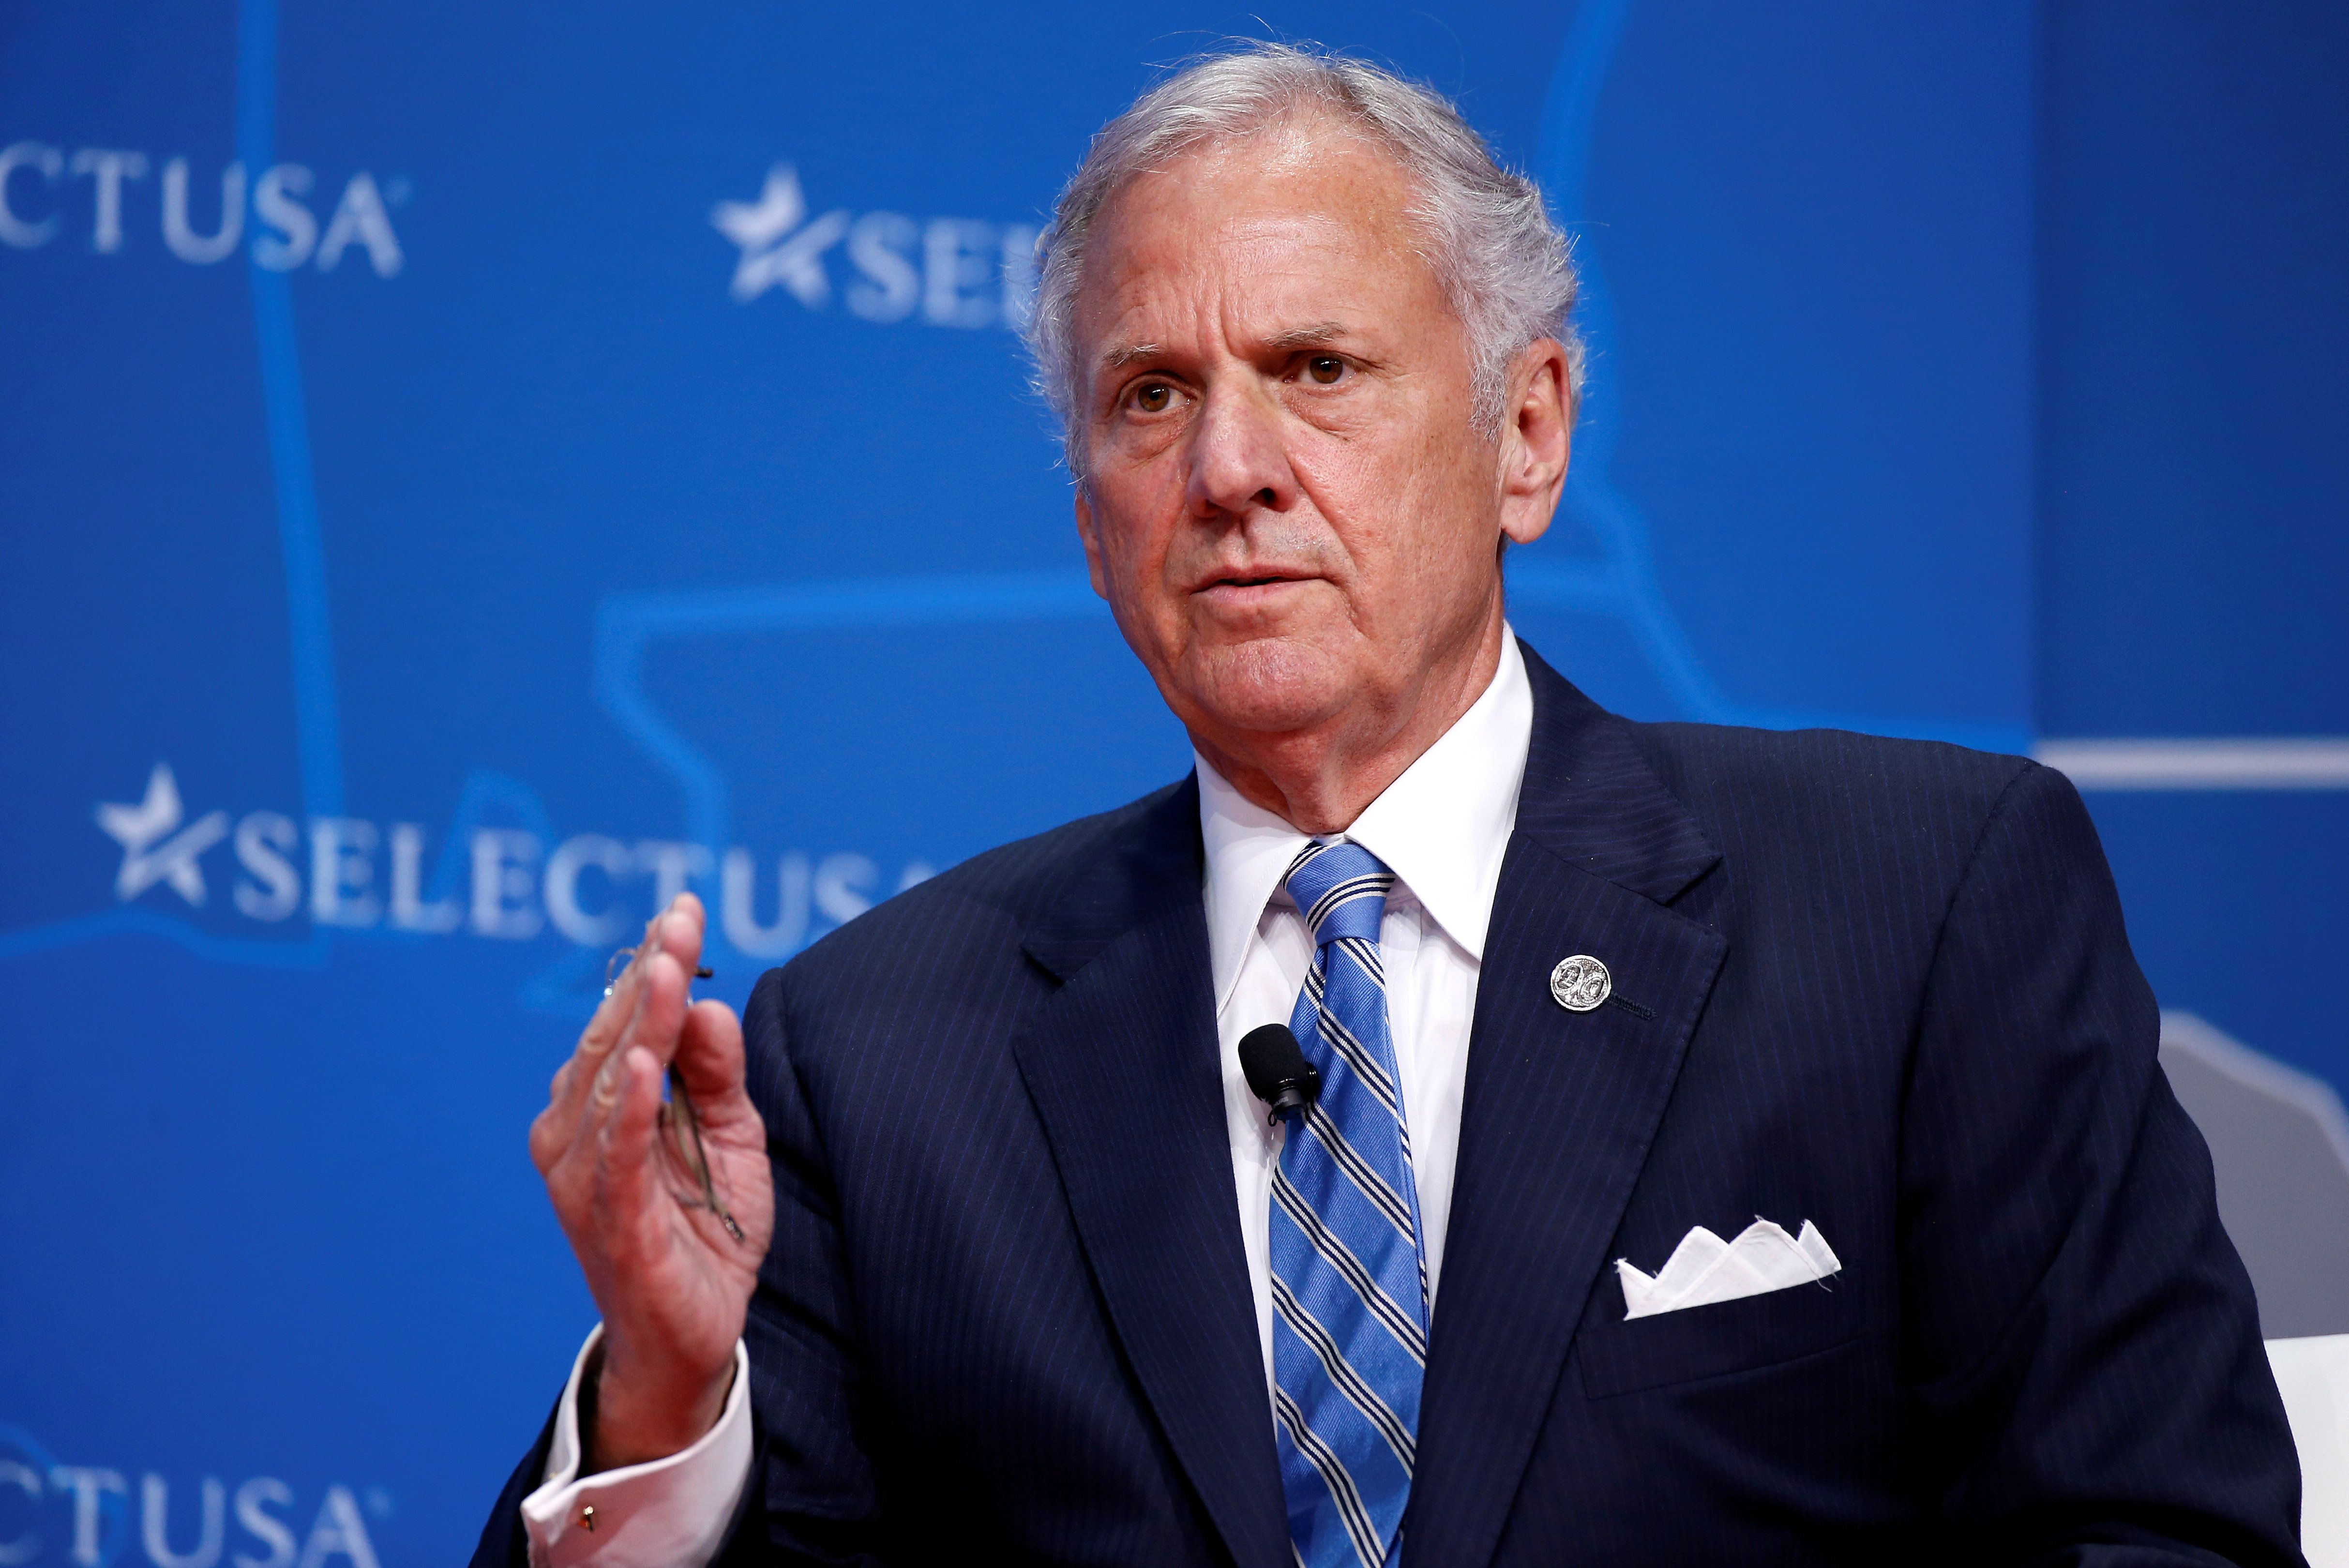 Republican Henry McMaster became South Carolina's governor after Nikki Haley gave up the post to serve as President Donald Trump's ambassador to the United Nations.